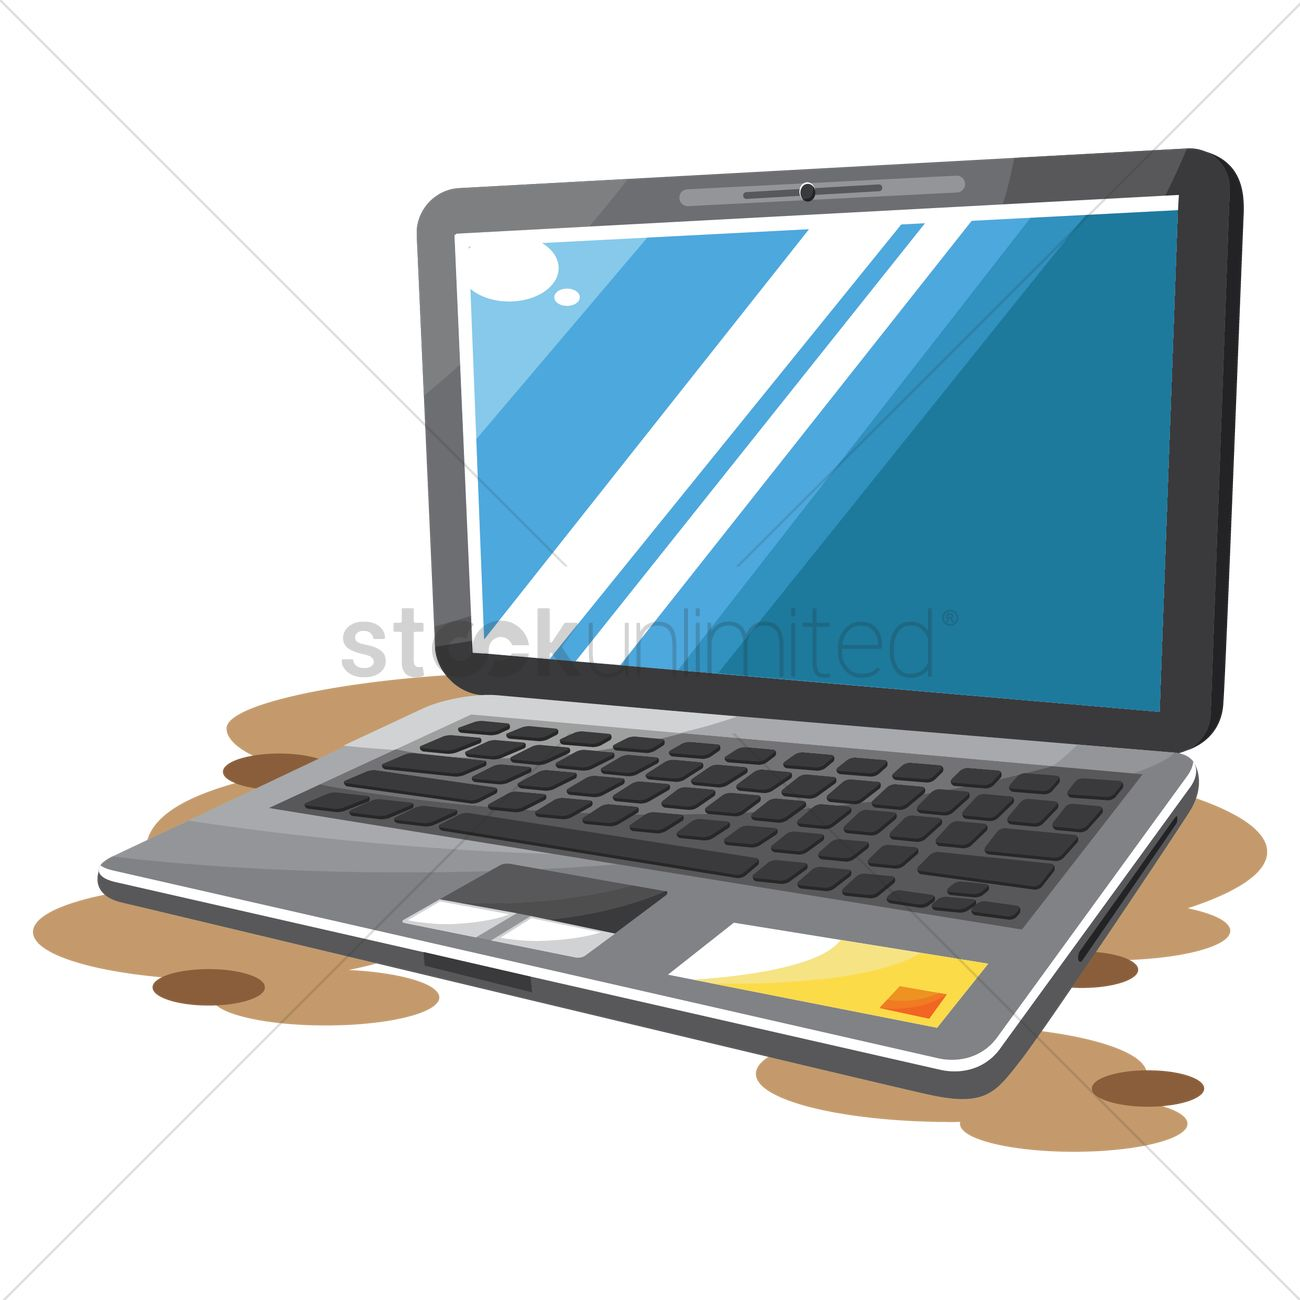 Free Laptop Vector Image - 1484497 | StockUnlimited